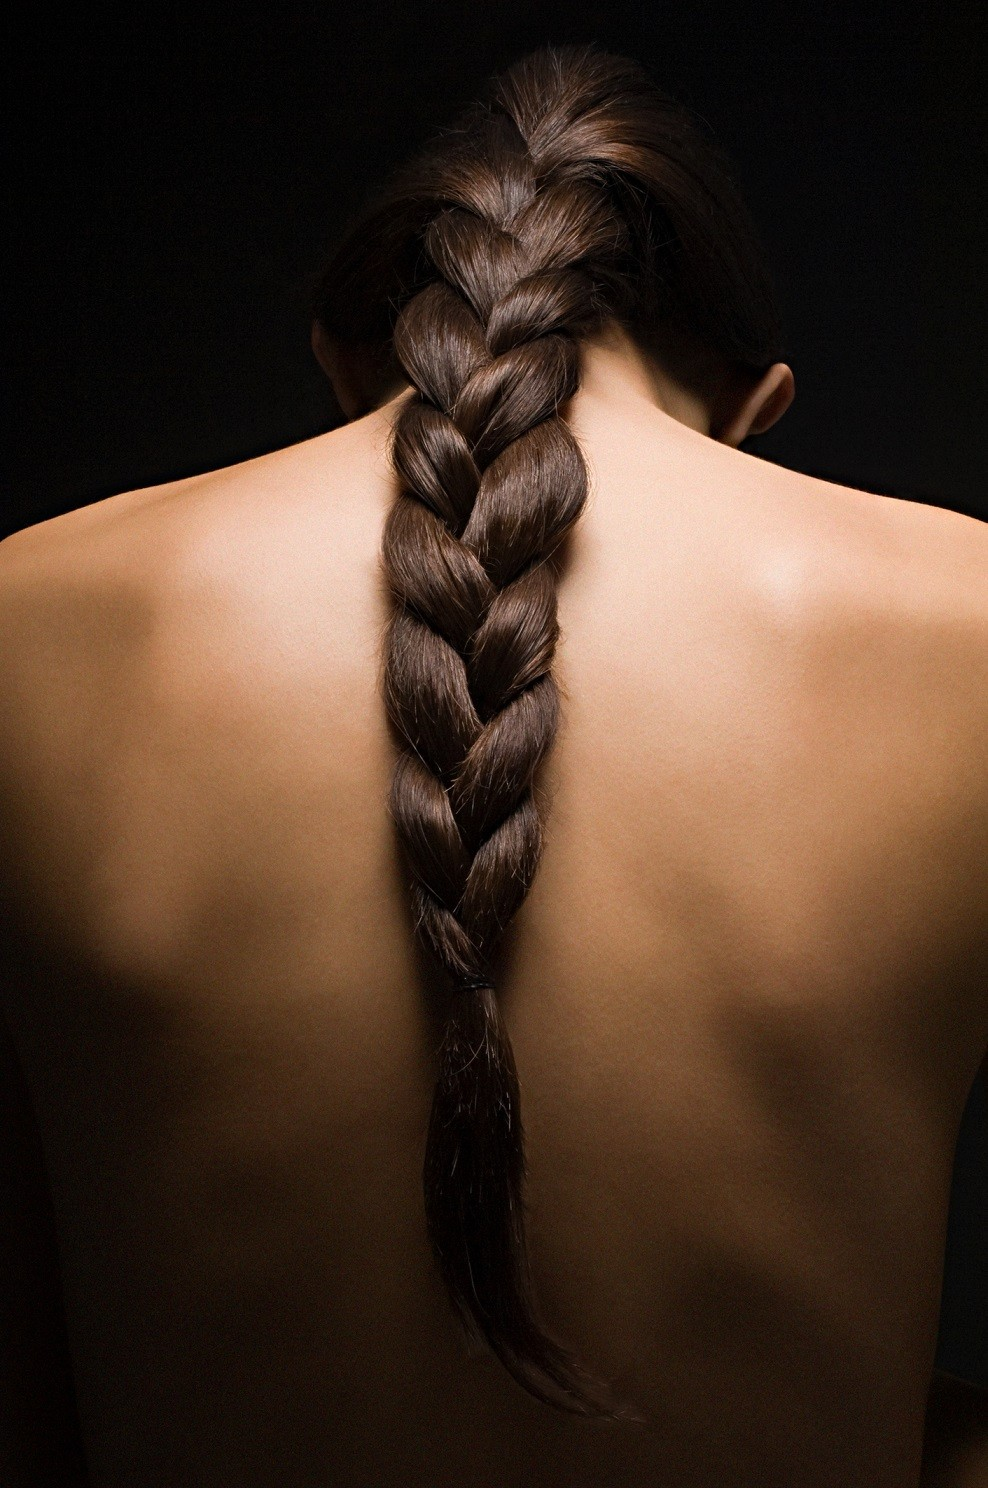 Woman with long braided hair